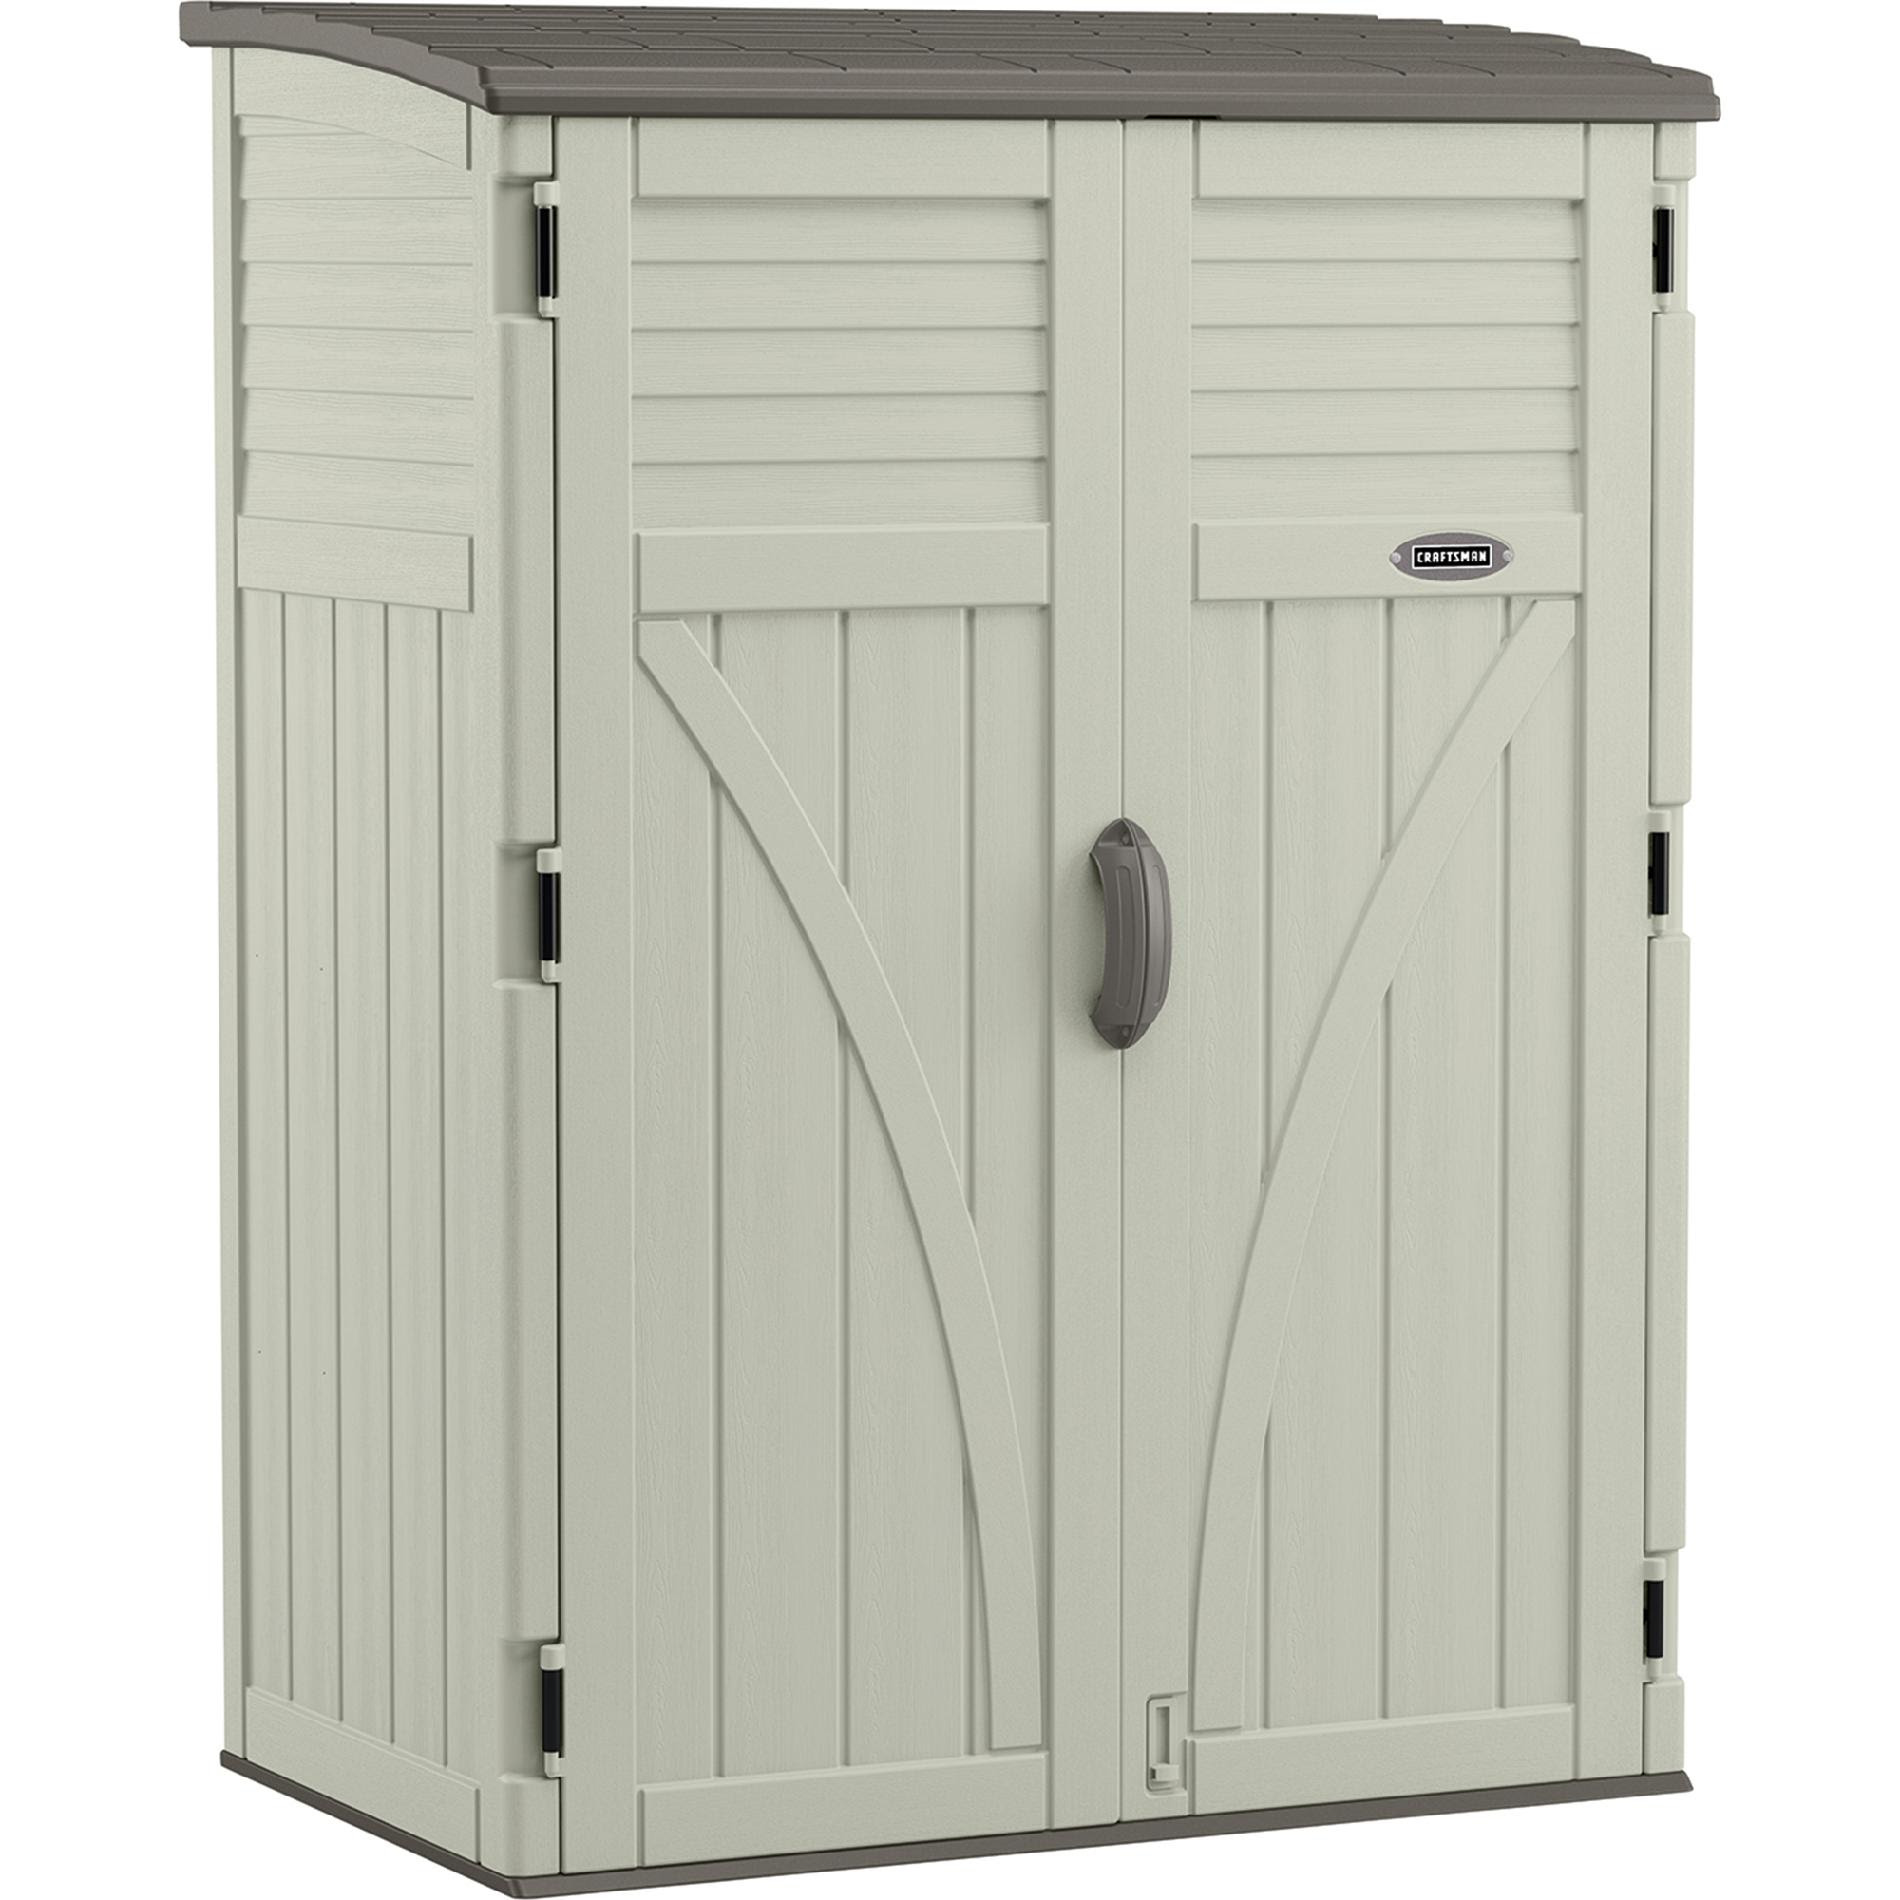 Craftsman CBMS5701 5 x 3 Vertical Storage Shed